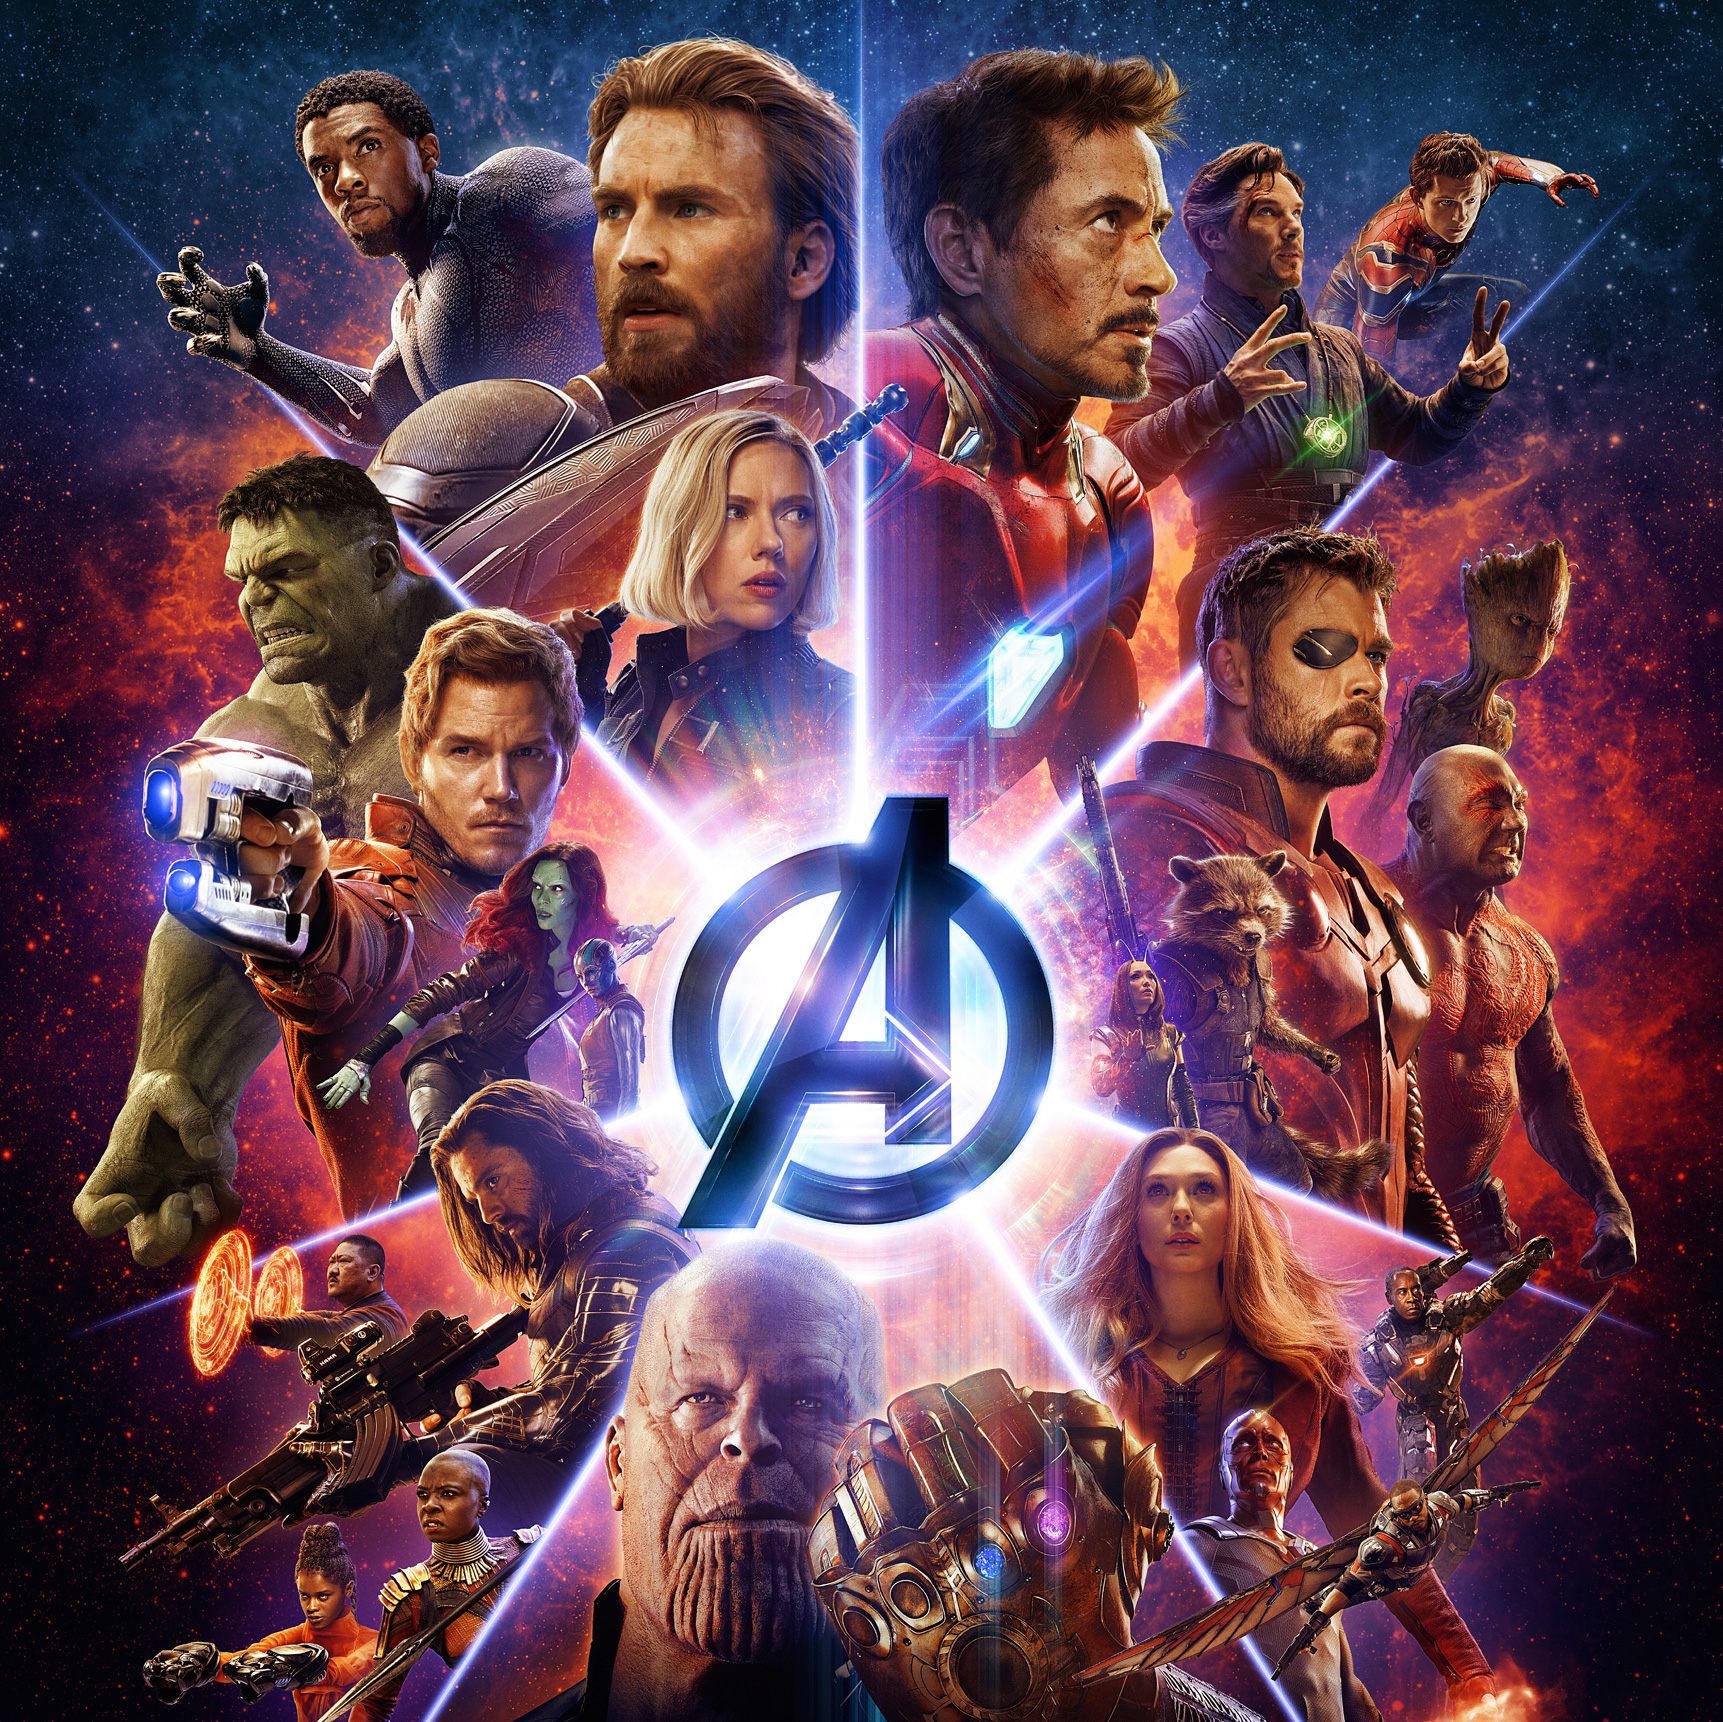 Photo of The Avengers: Infinity War - $ 1 Billion in 11 Days